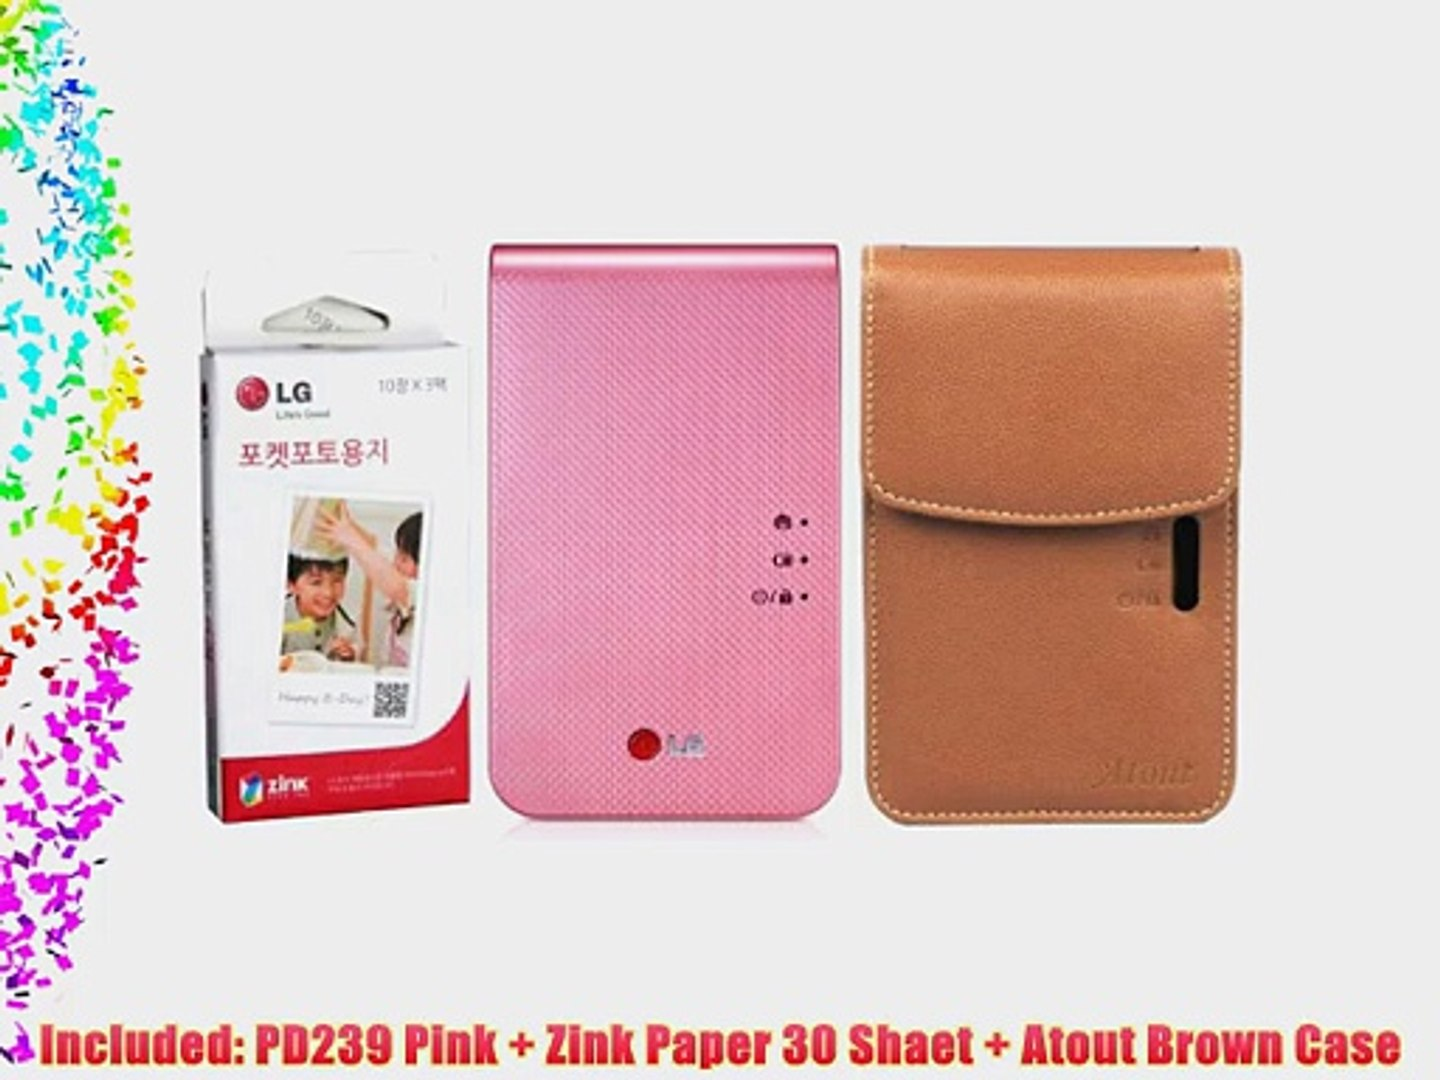 LG Popo Premium Synthetic Leather Case for PD239 PD241 Photo Printer Pink